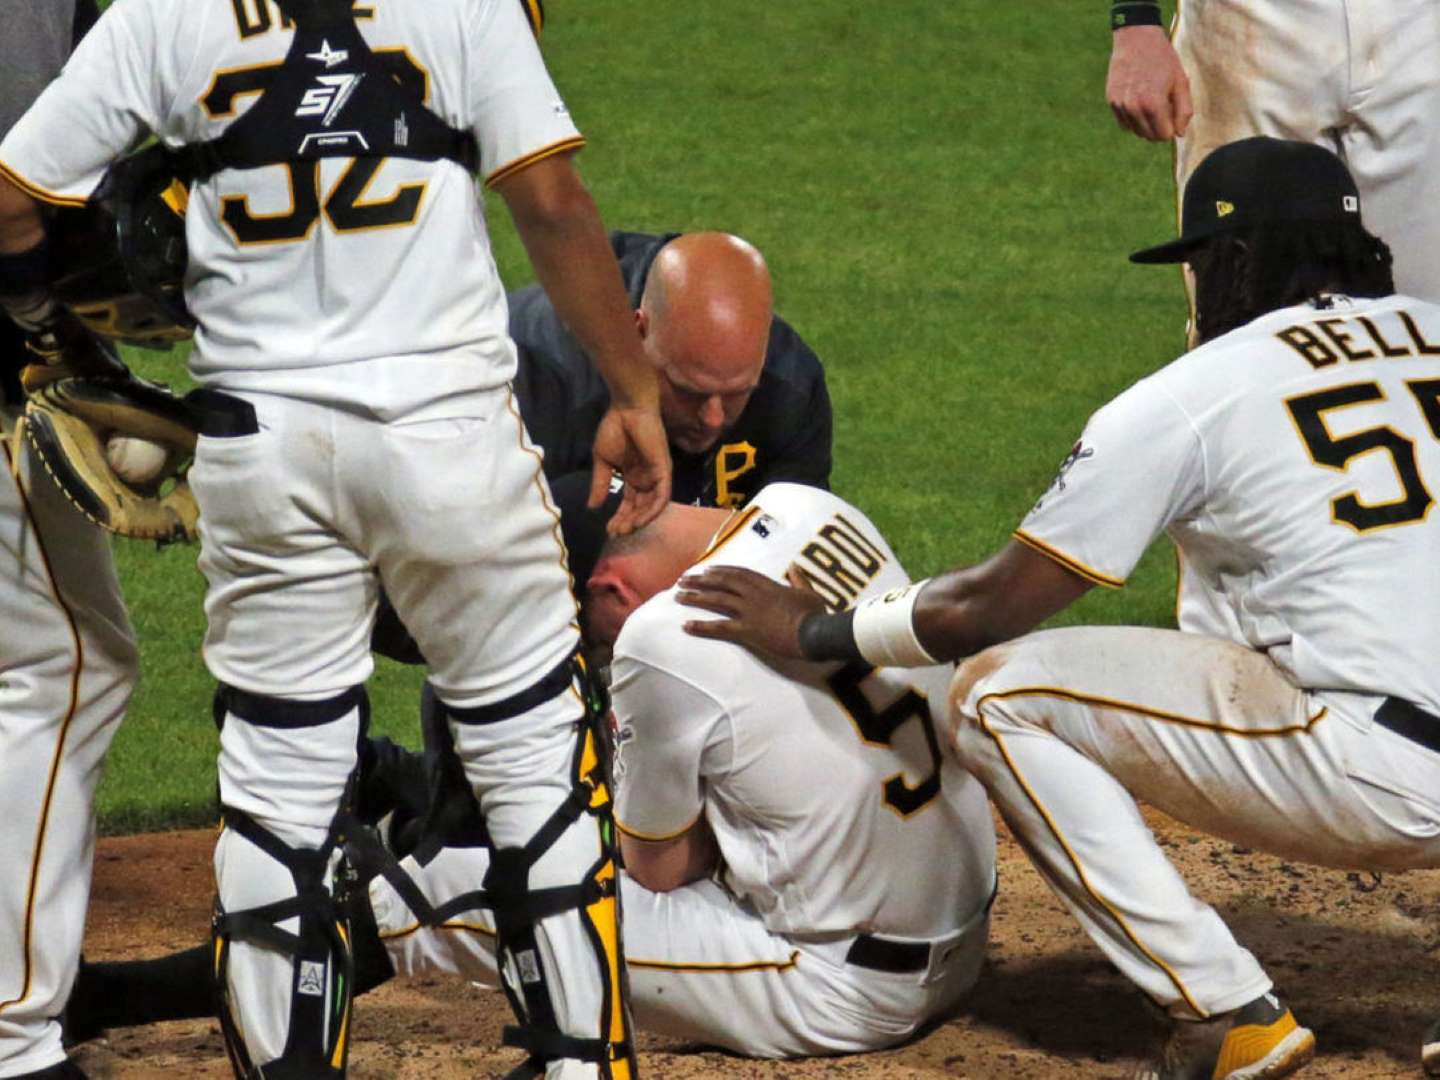 Pirates' Burdi collapses with arm injury after throwing pitch